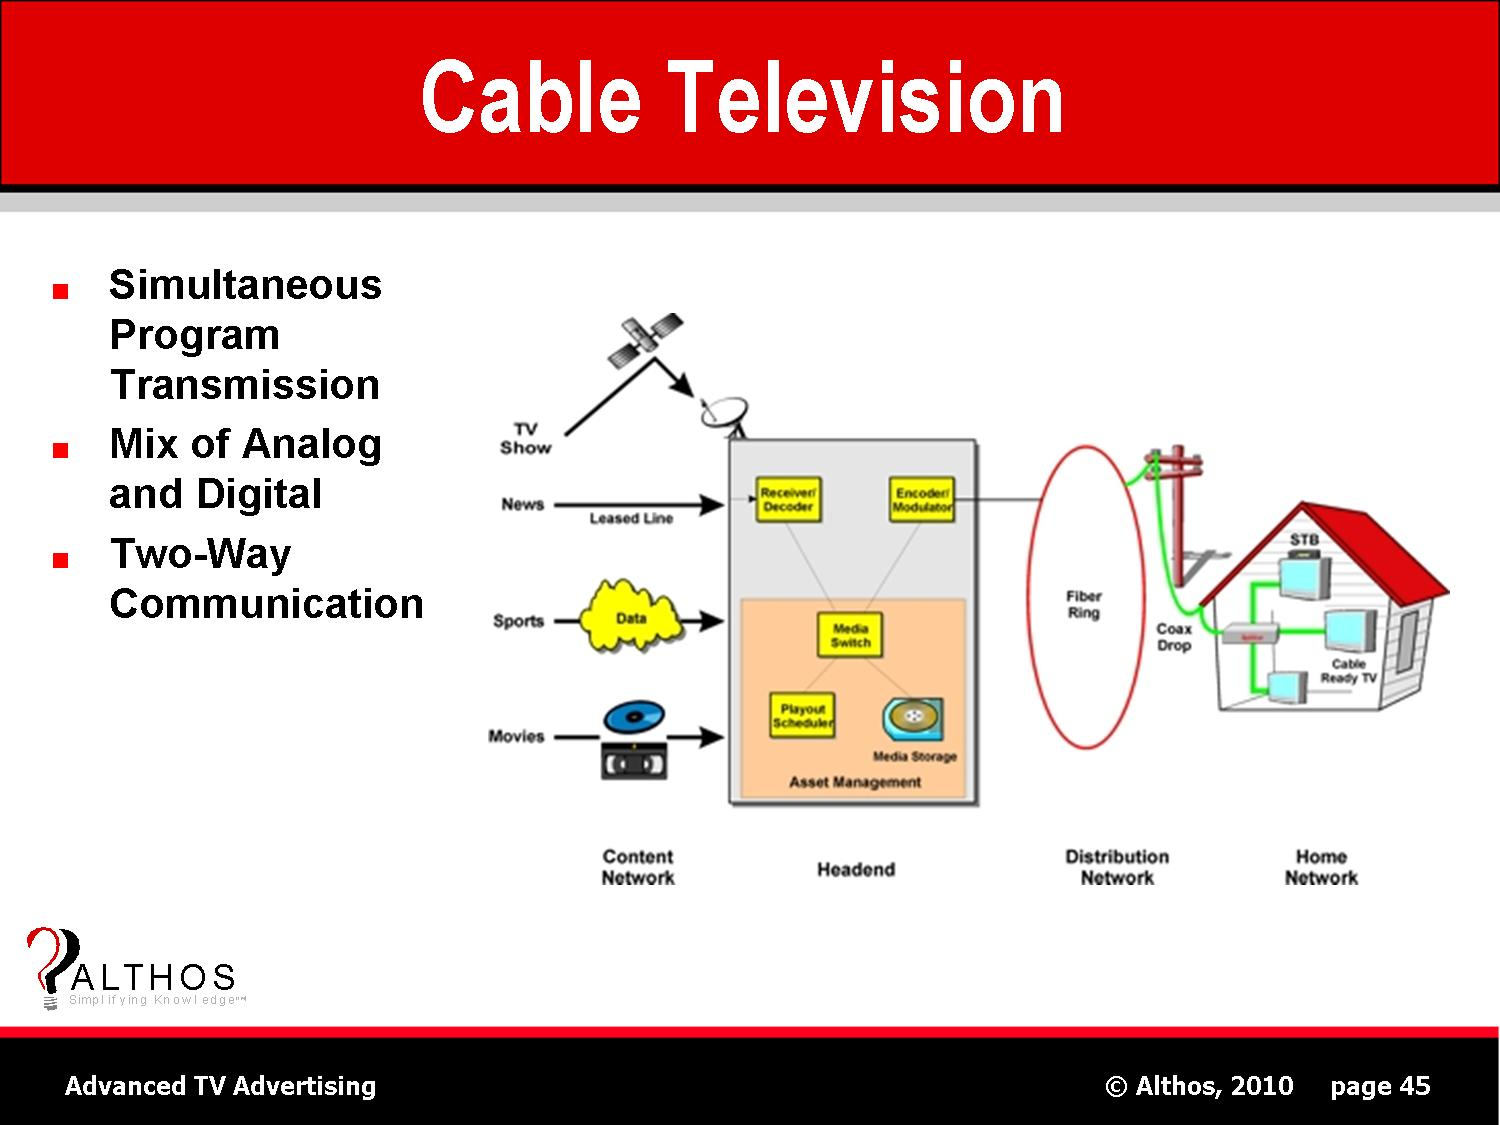 TV Advertising Tutorial - Cable Television - CATV System